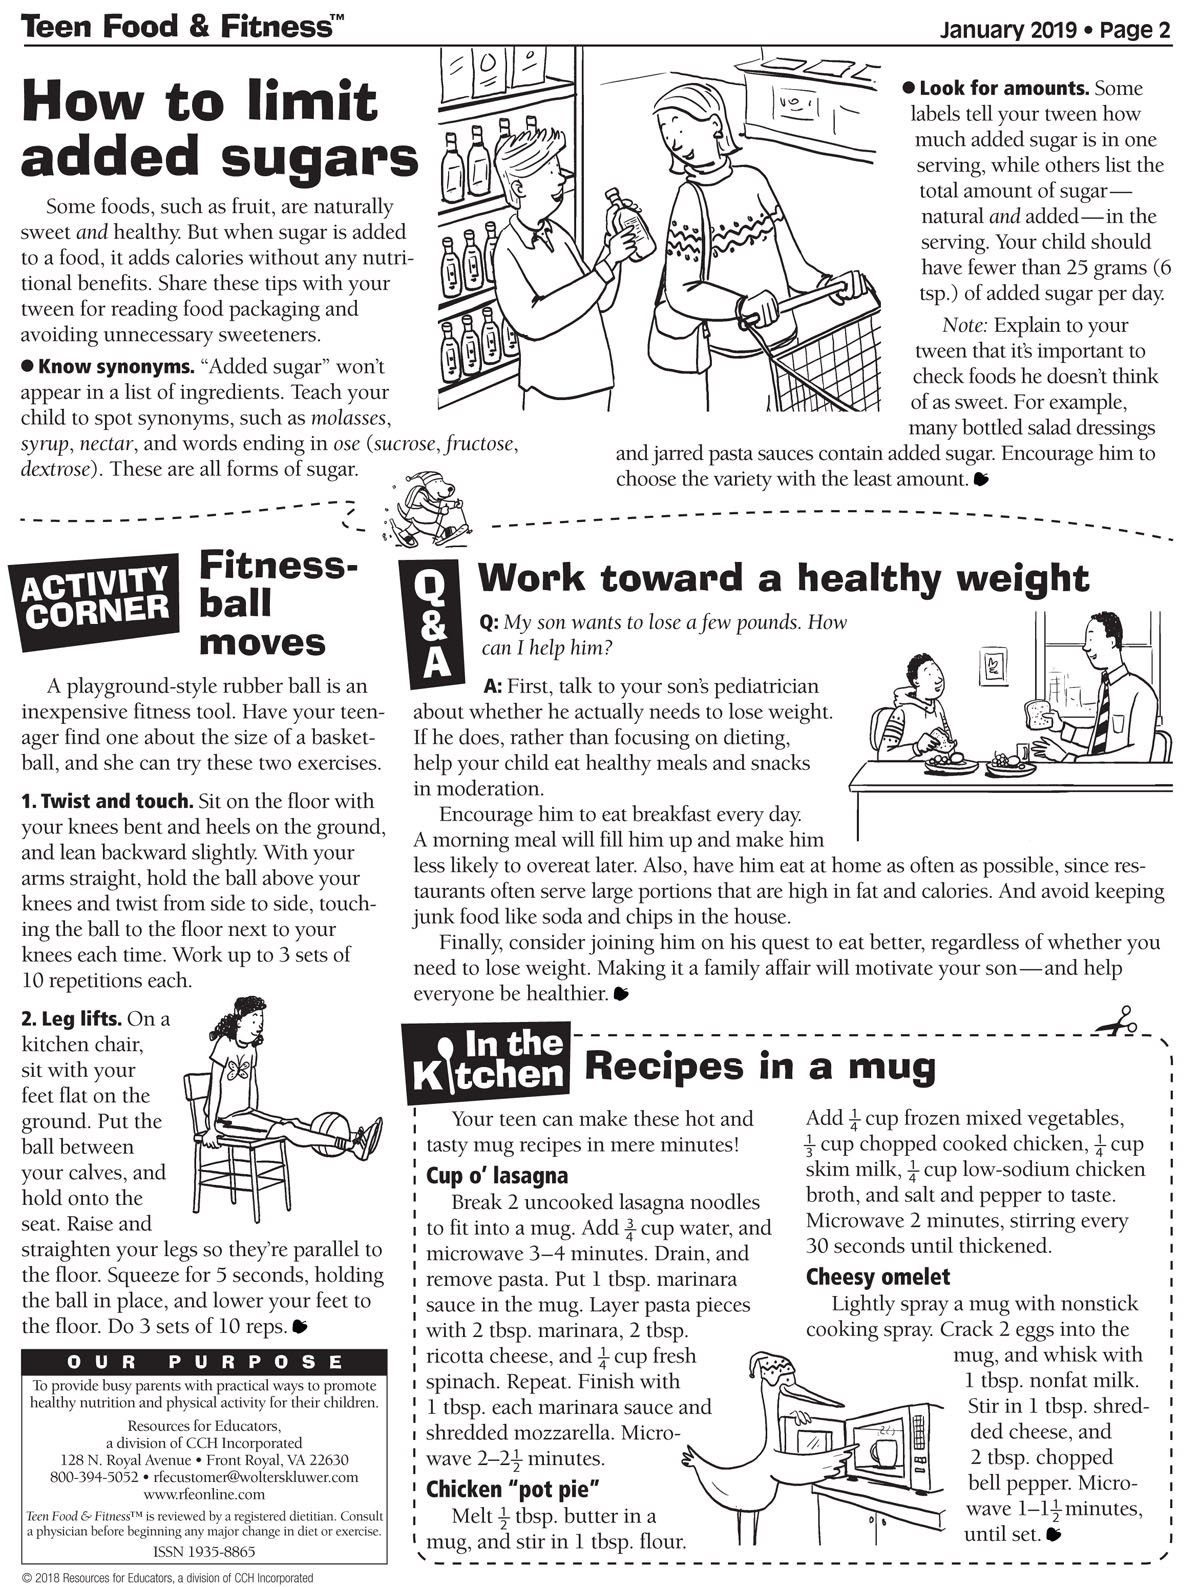 Food and Fitness Newsletter January 2019 page 2